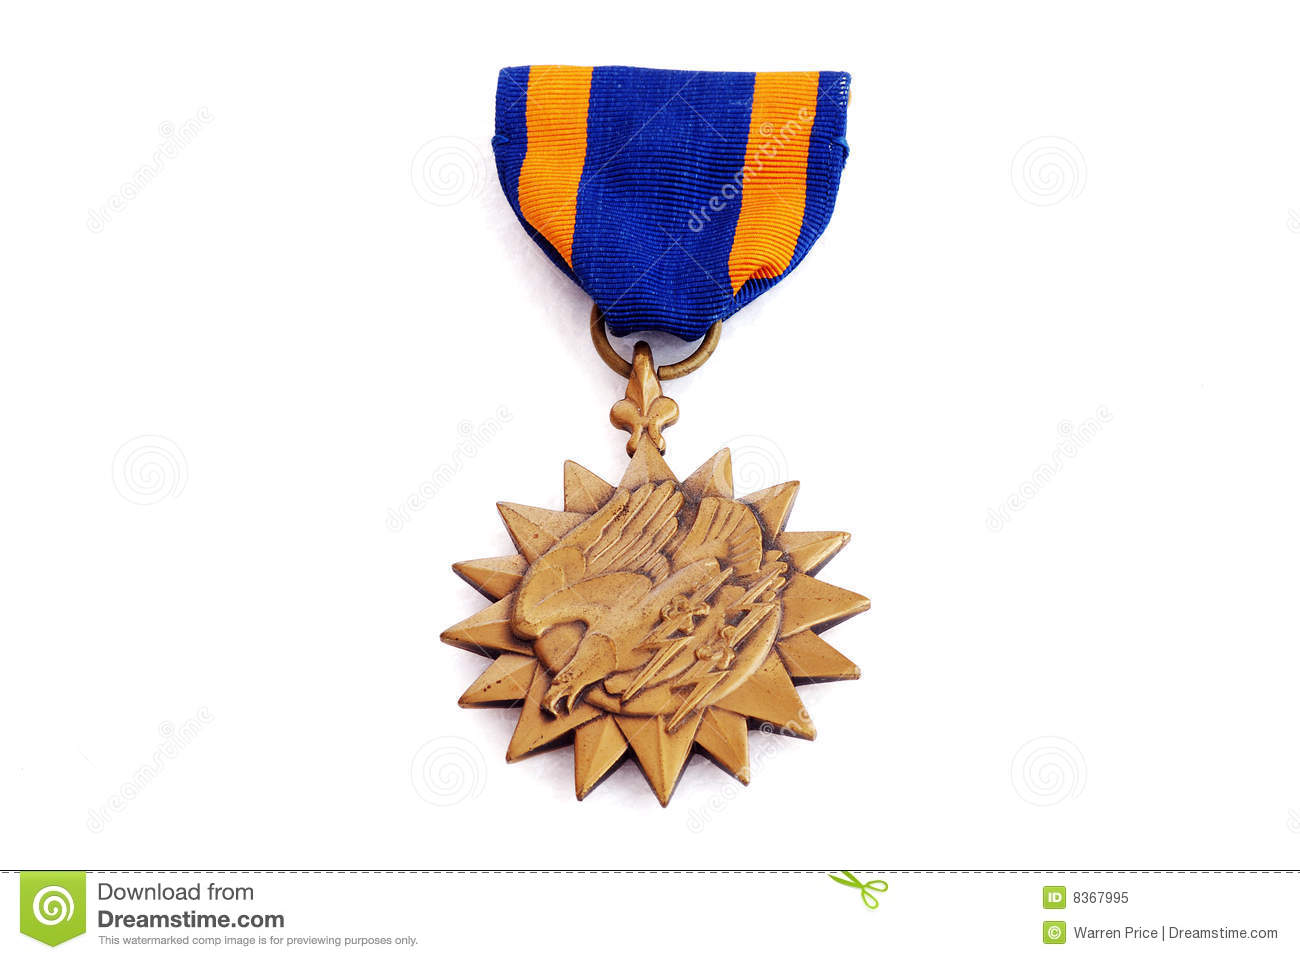 Royalty Free Stock Photo: Army Air Medal. Image: 8367995